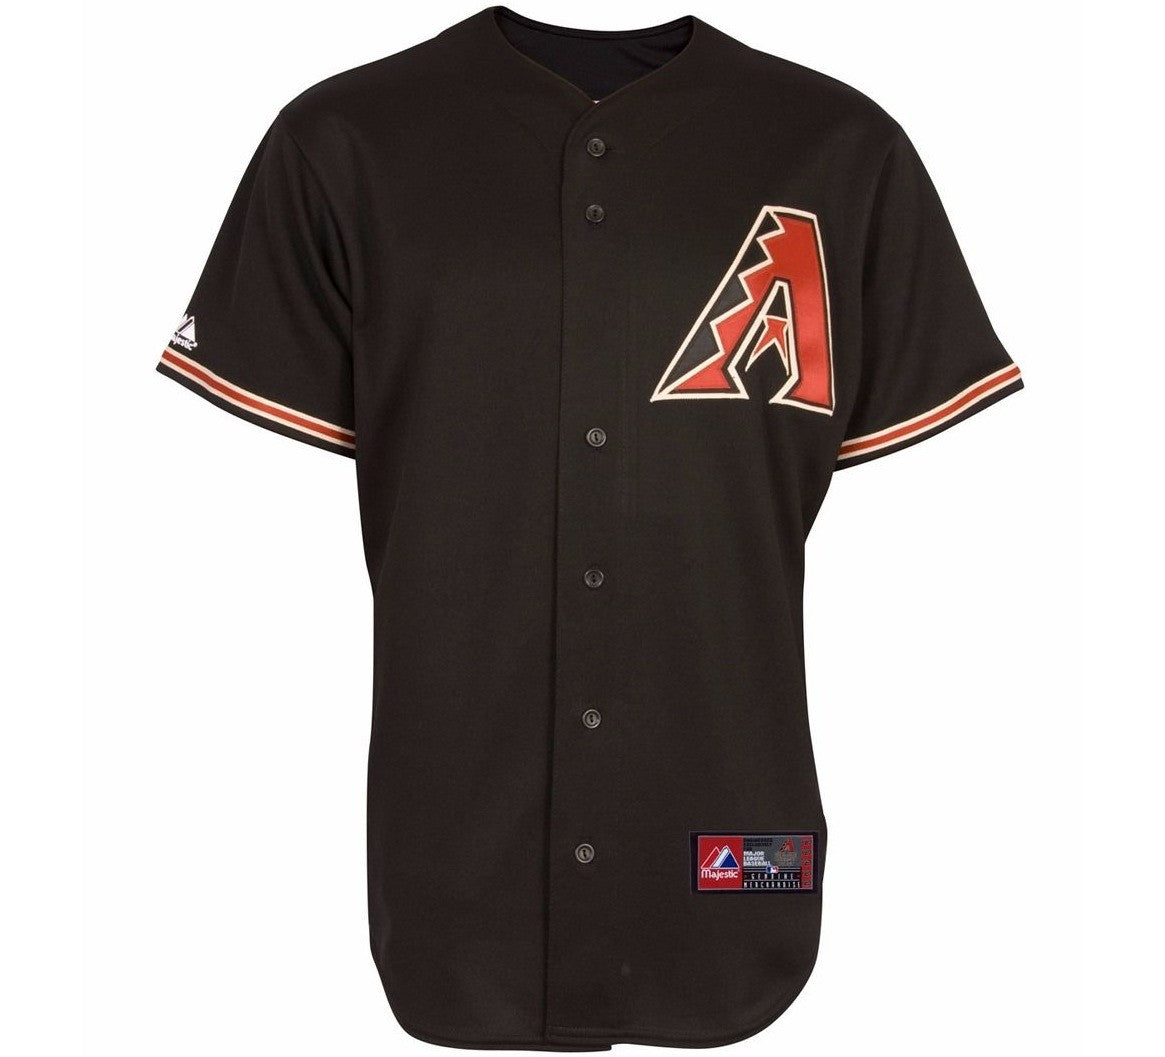 Randy Johnson D'Backs Jersey